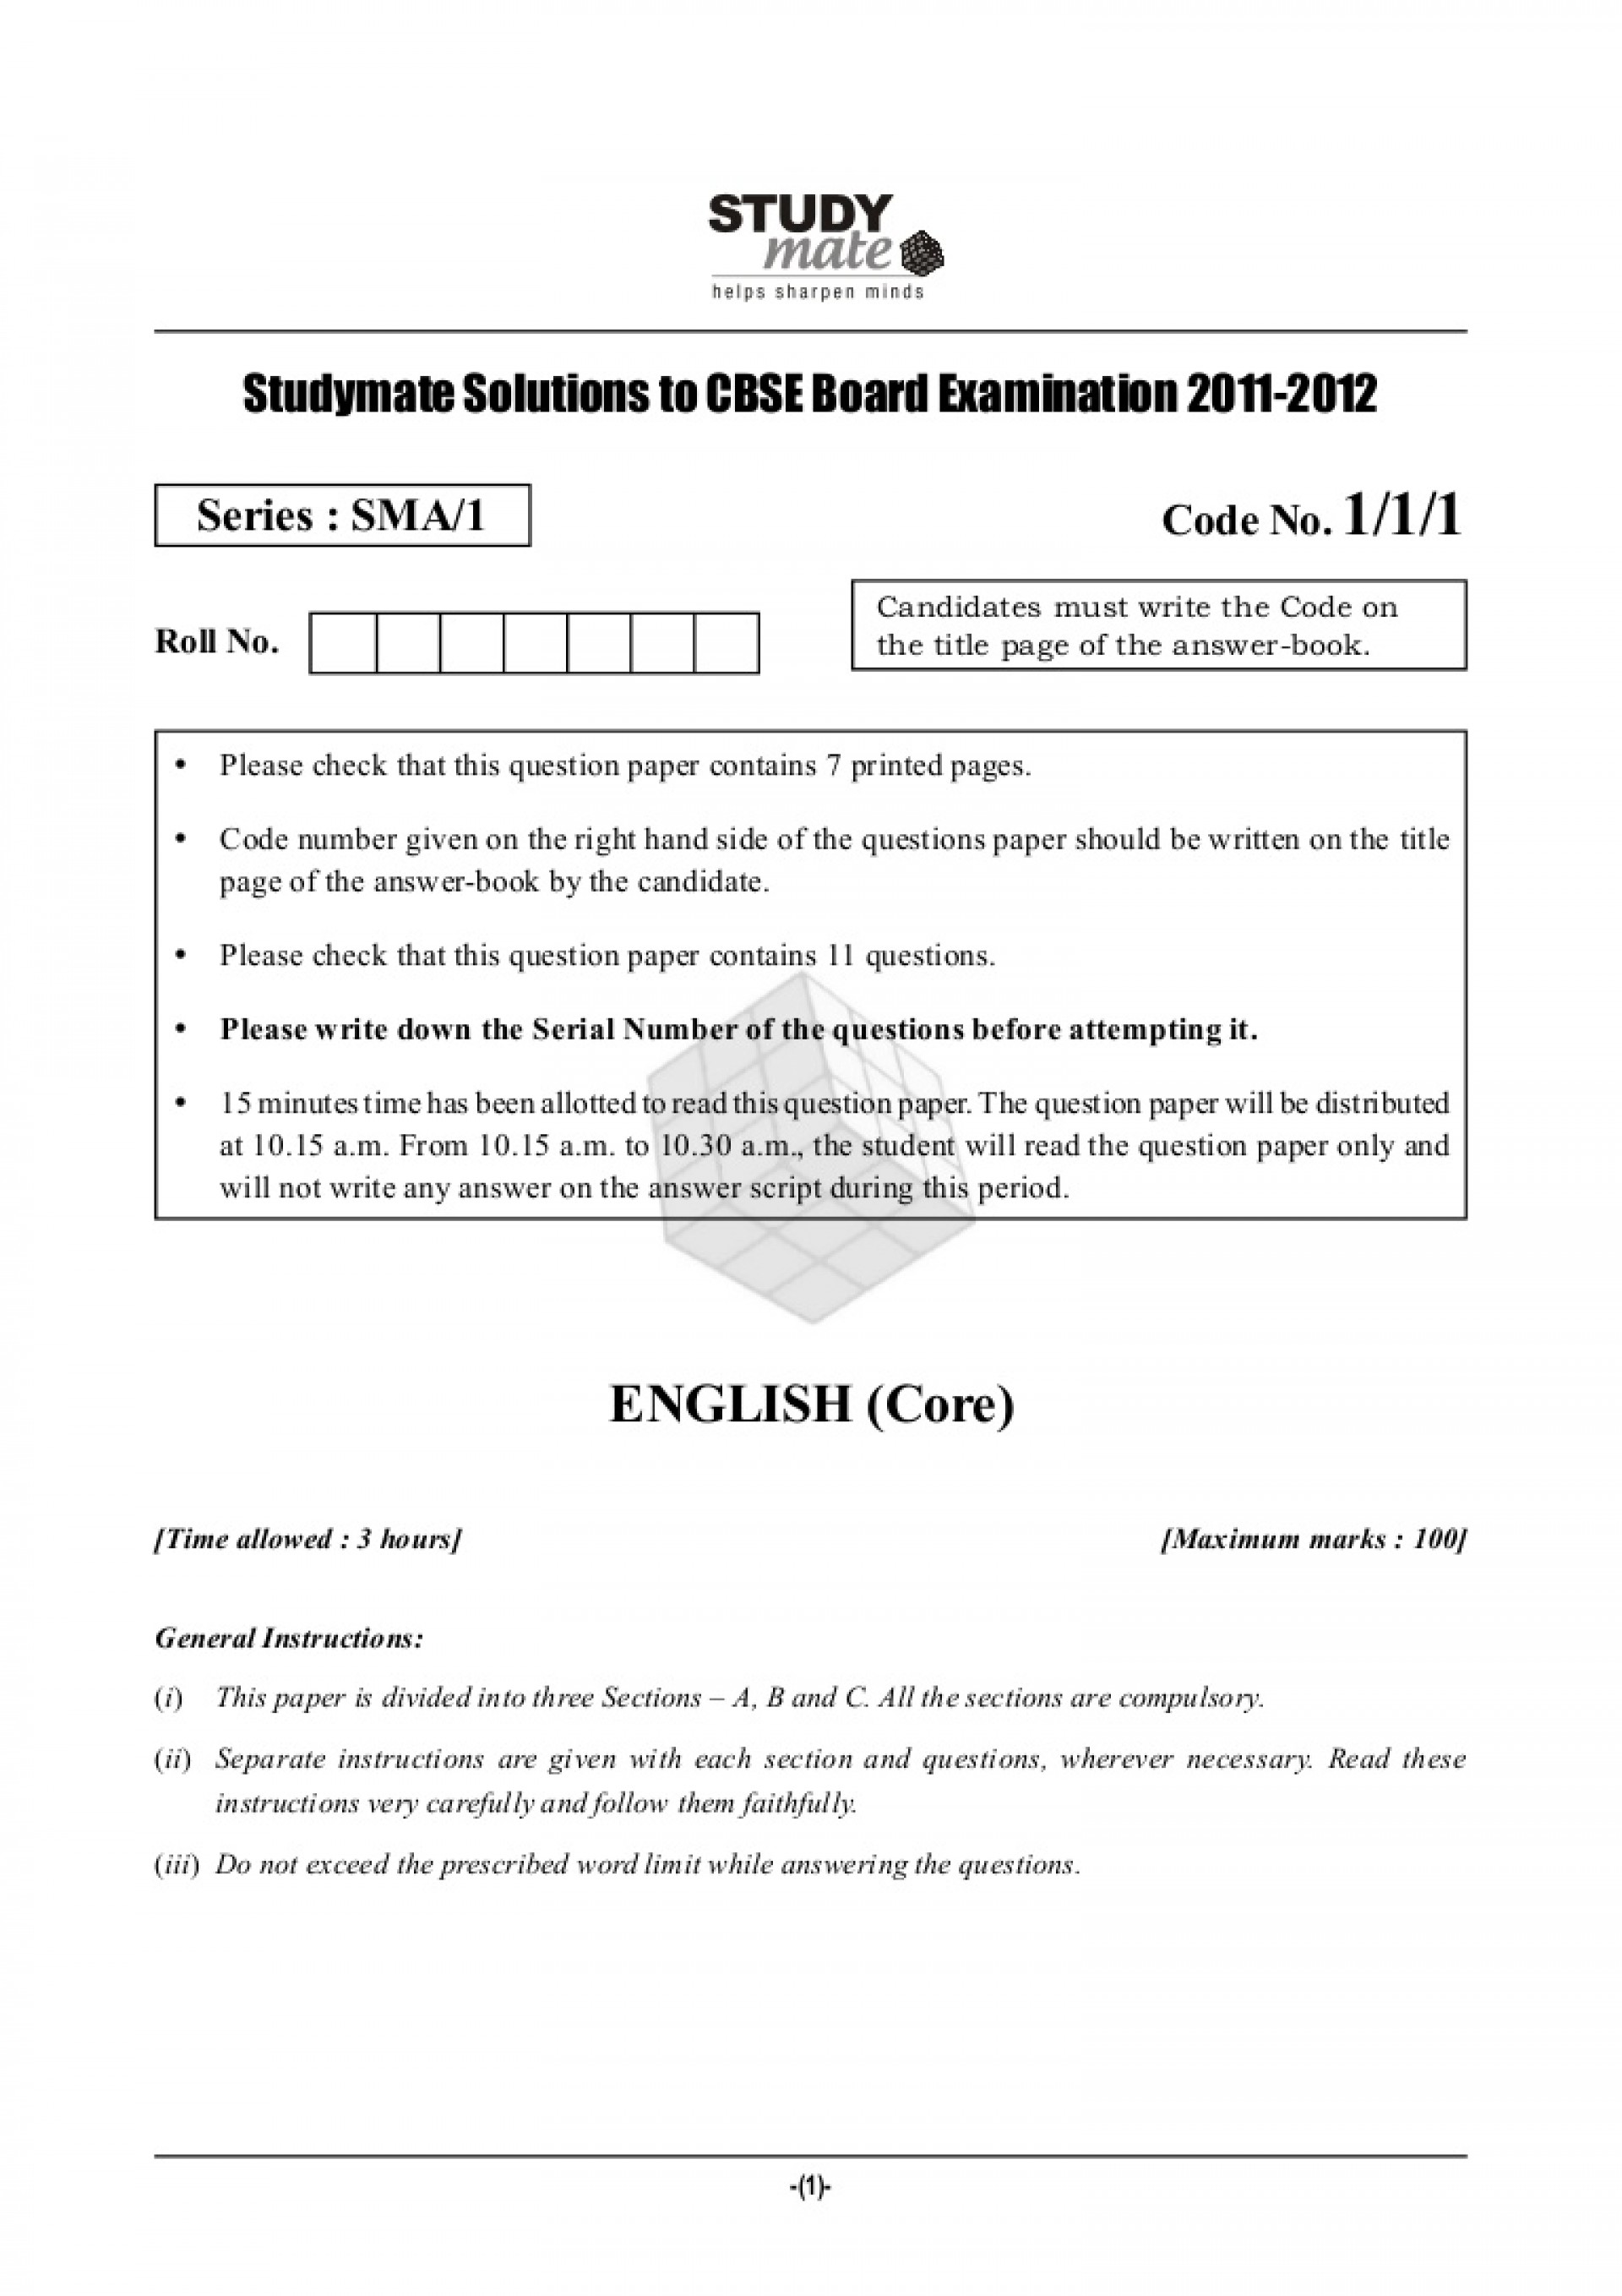 019 Essay Example Englishcbse2011 12solutions Phpapp02 Thumbnail Unusual Myself Writing About Introduction In Urdu Pdf 1920